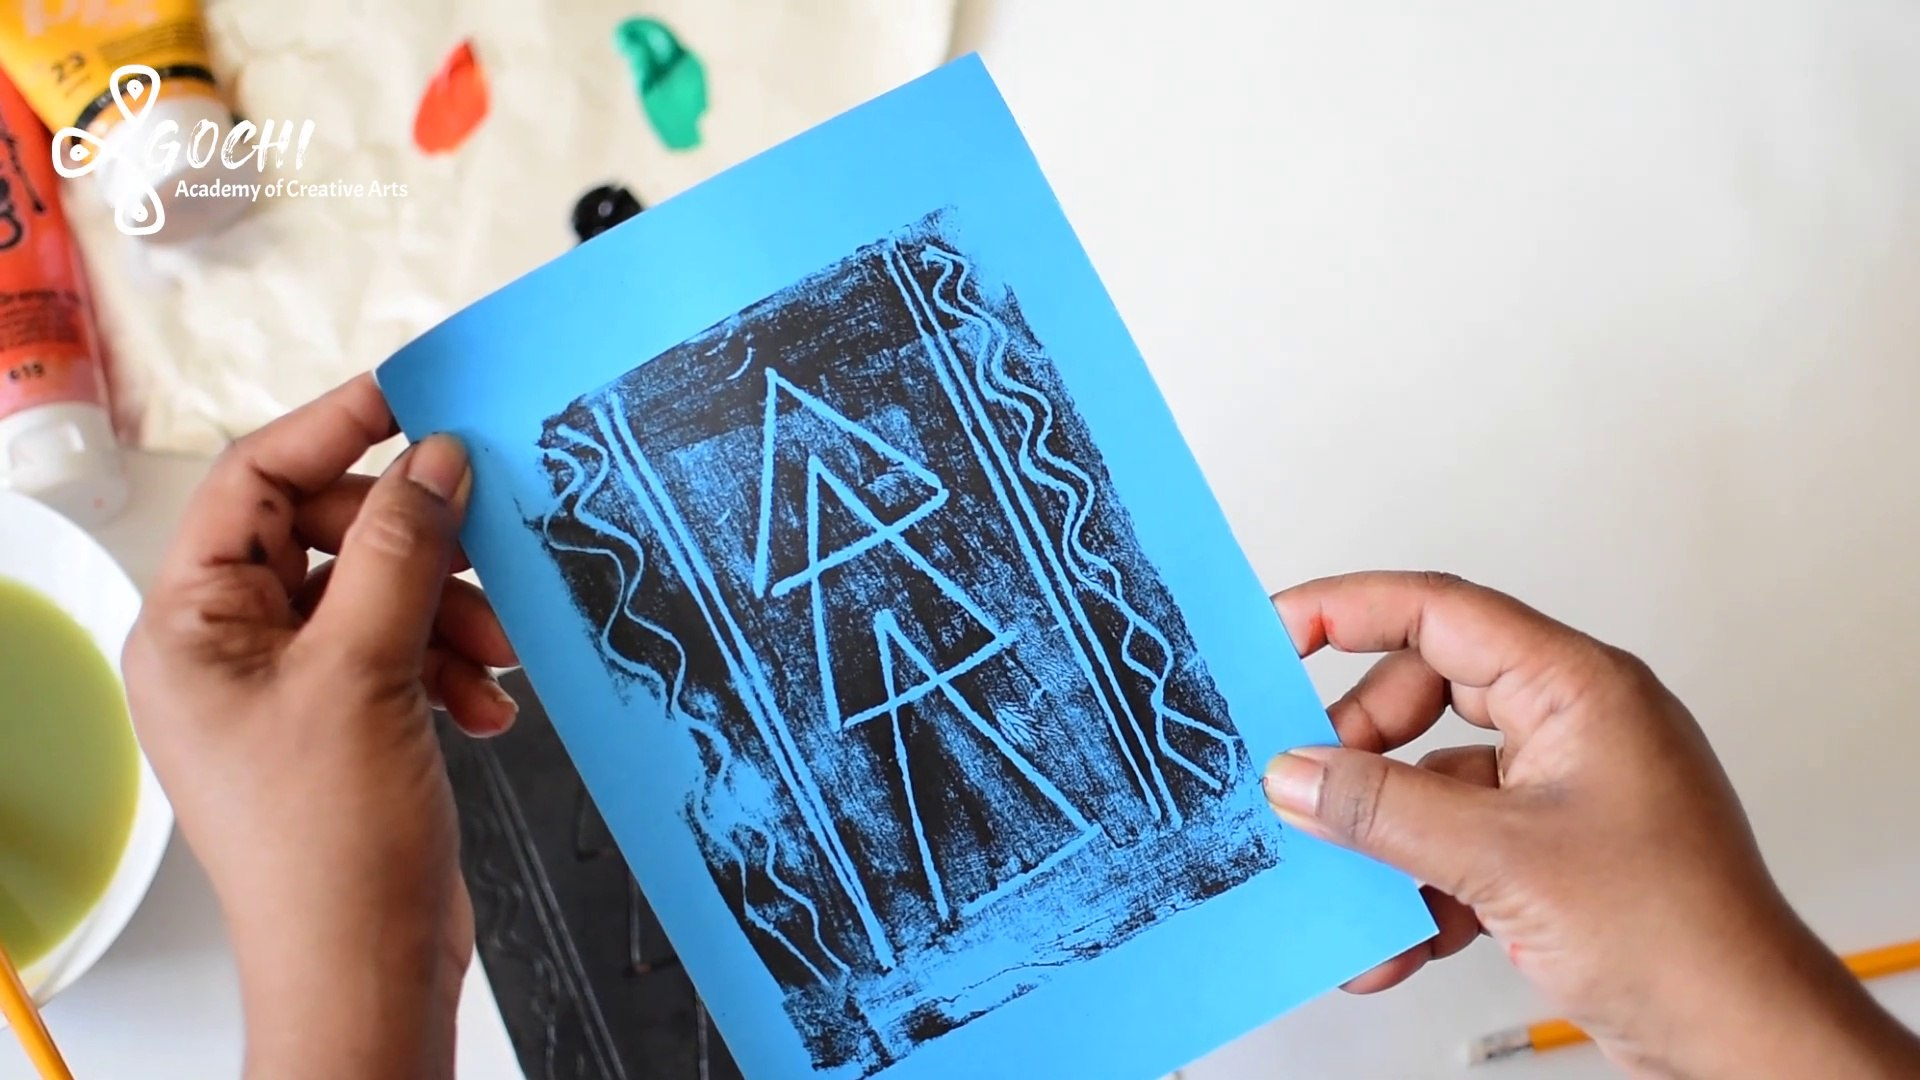 Easy Creative Activity for Kids - Foam Sheet Printing